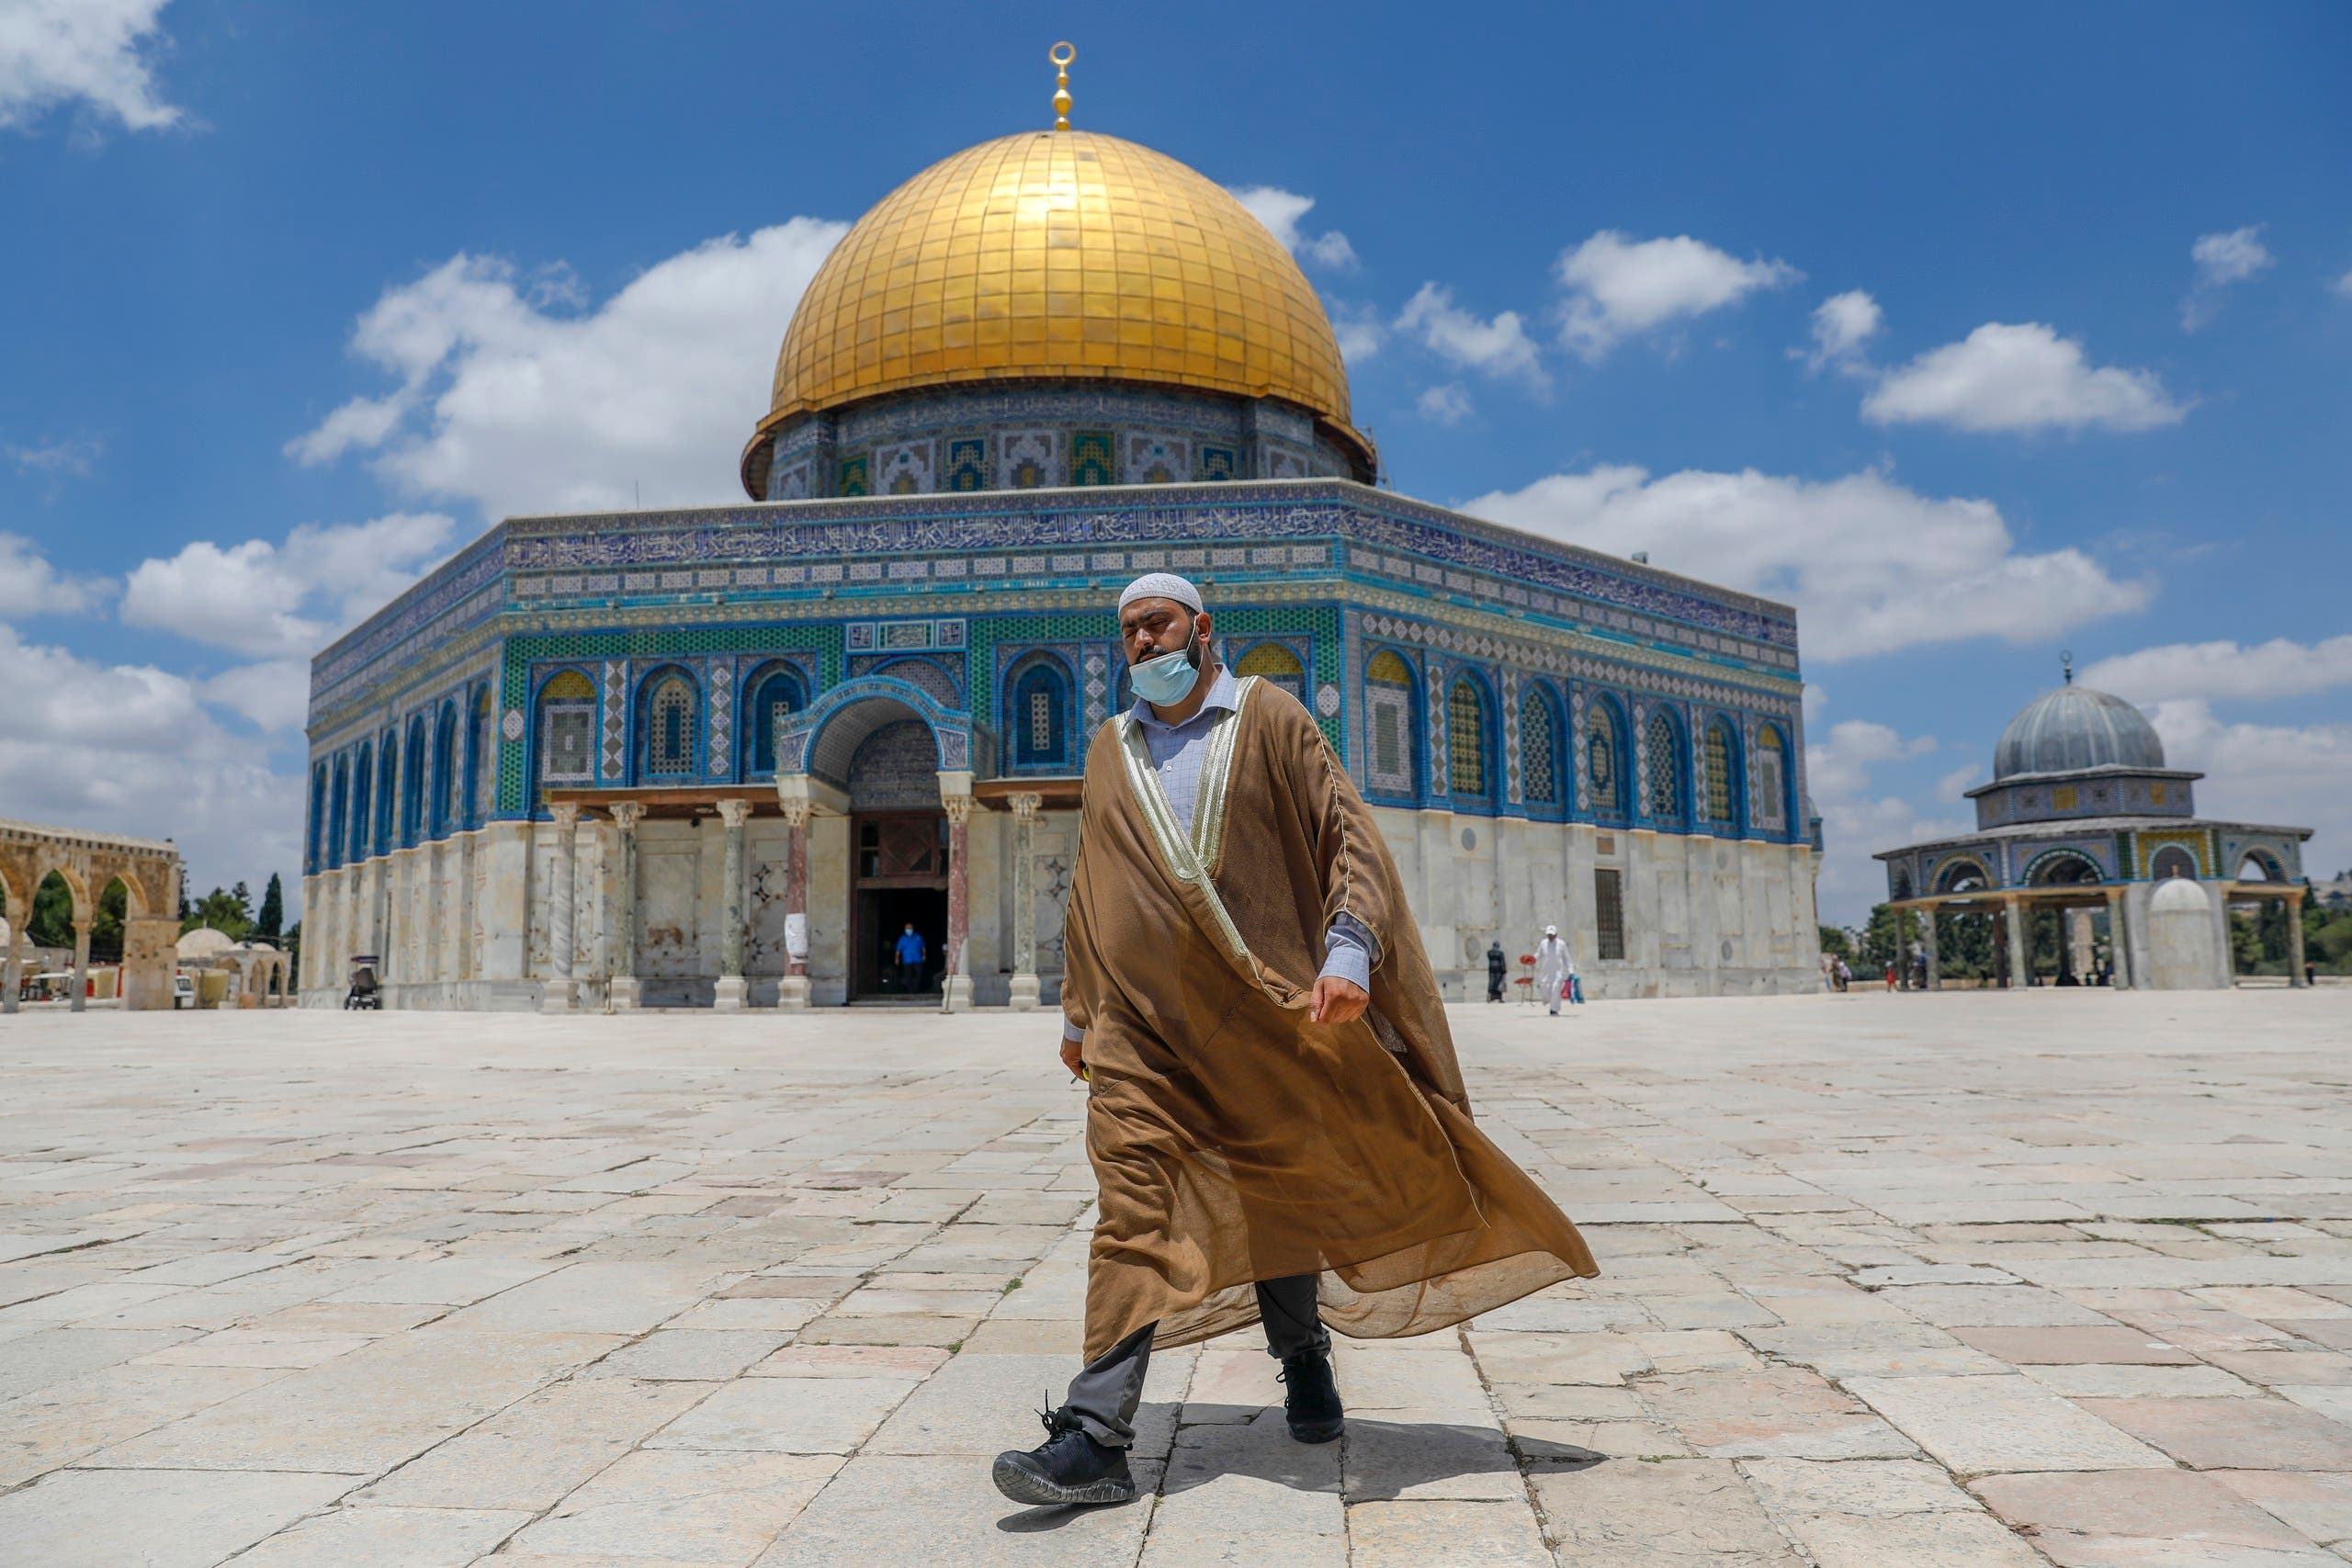 A Palestinian man walks outside the Dome of the Rock Mosque in East Jerusalem's al-Aqsa compound on July 9, 2020. (AFP)